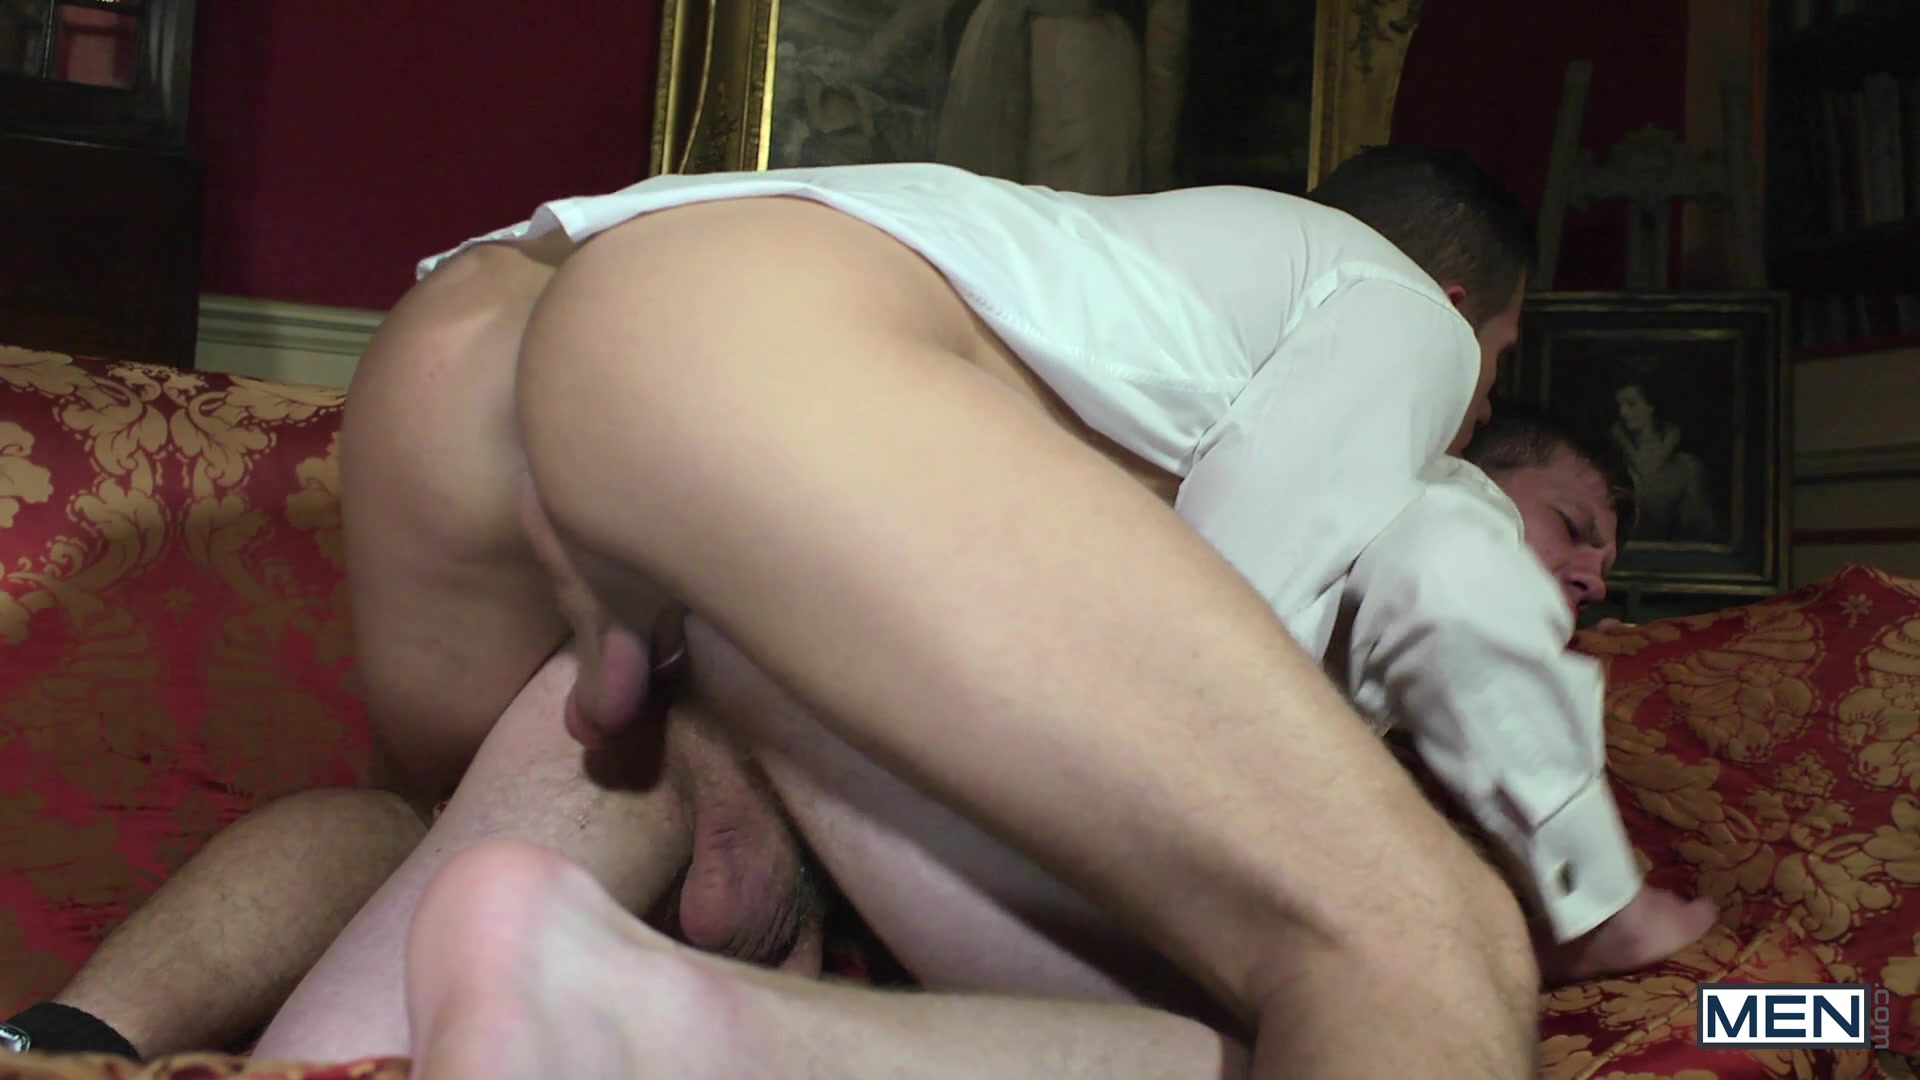 Watch The Abbey Part 2 – Daniel Johnson – Paul Walker –  Mouk – Men Of Uk (MEN.COM) Gay Porn Tube Videos Gifs And Free XXX HD Sex Movies Photos Online